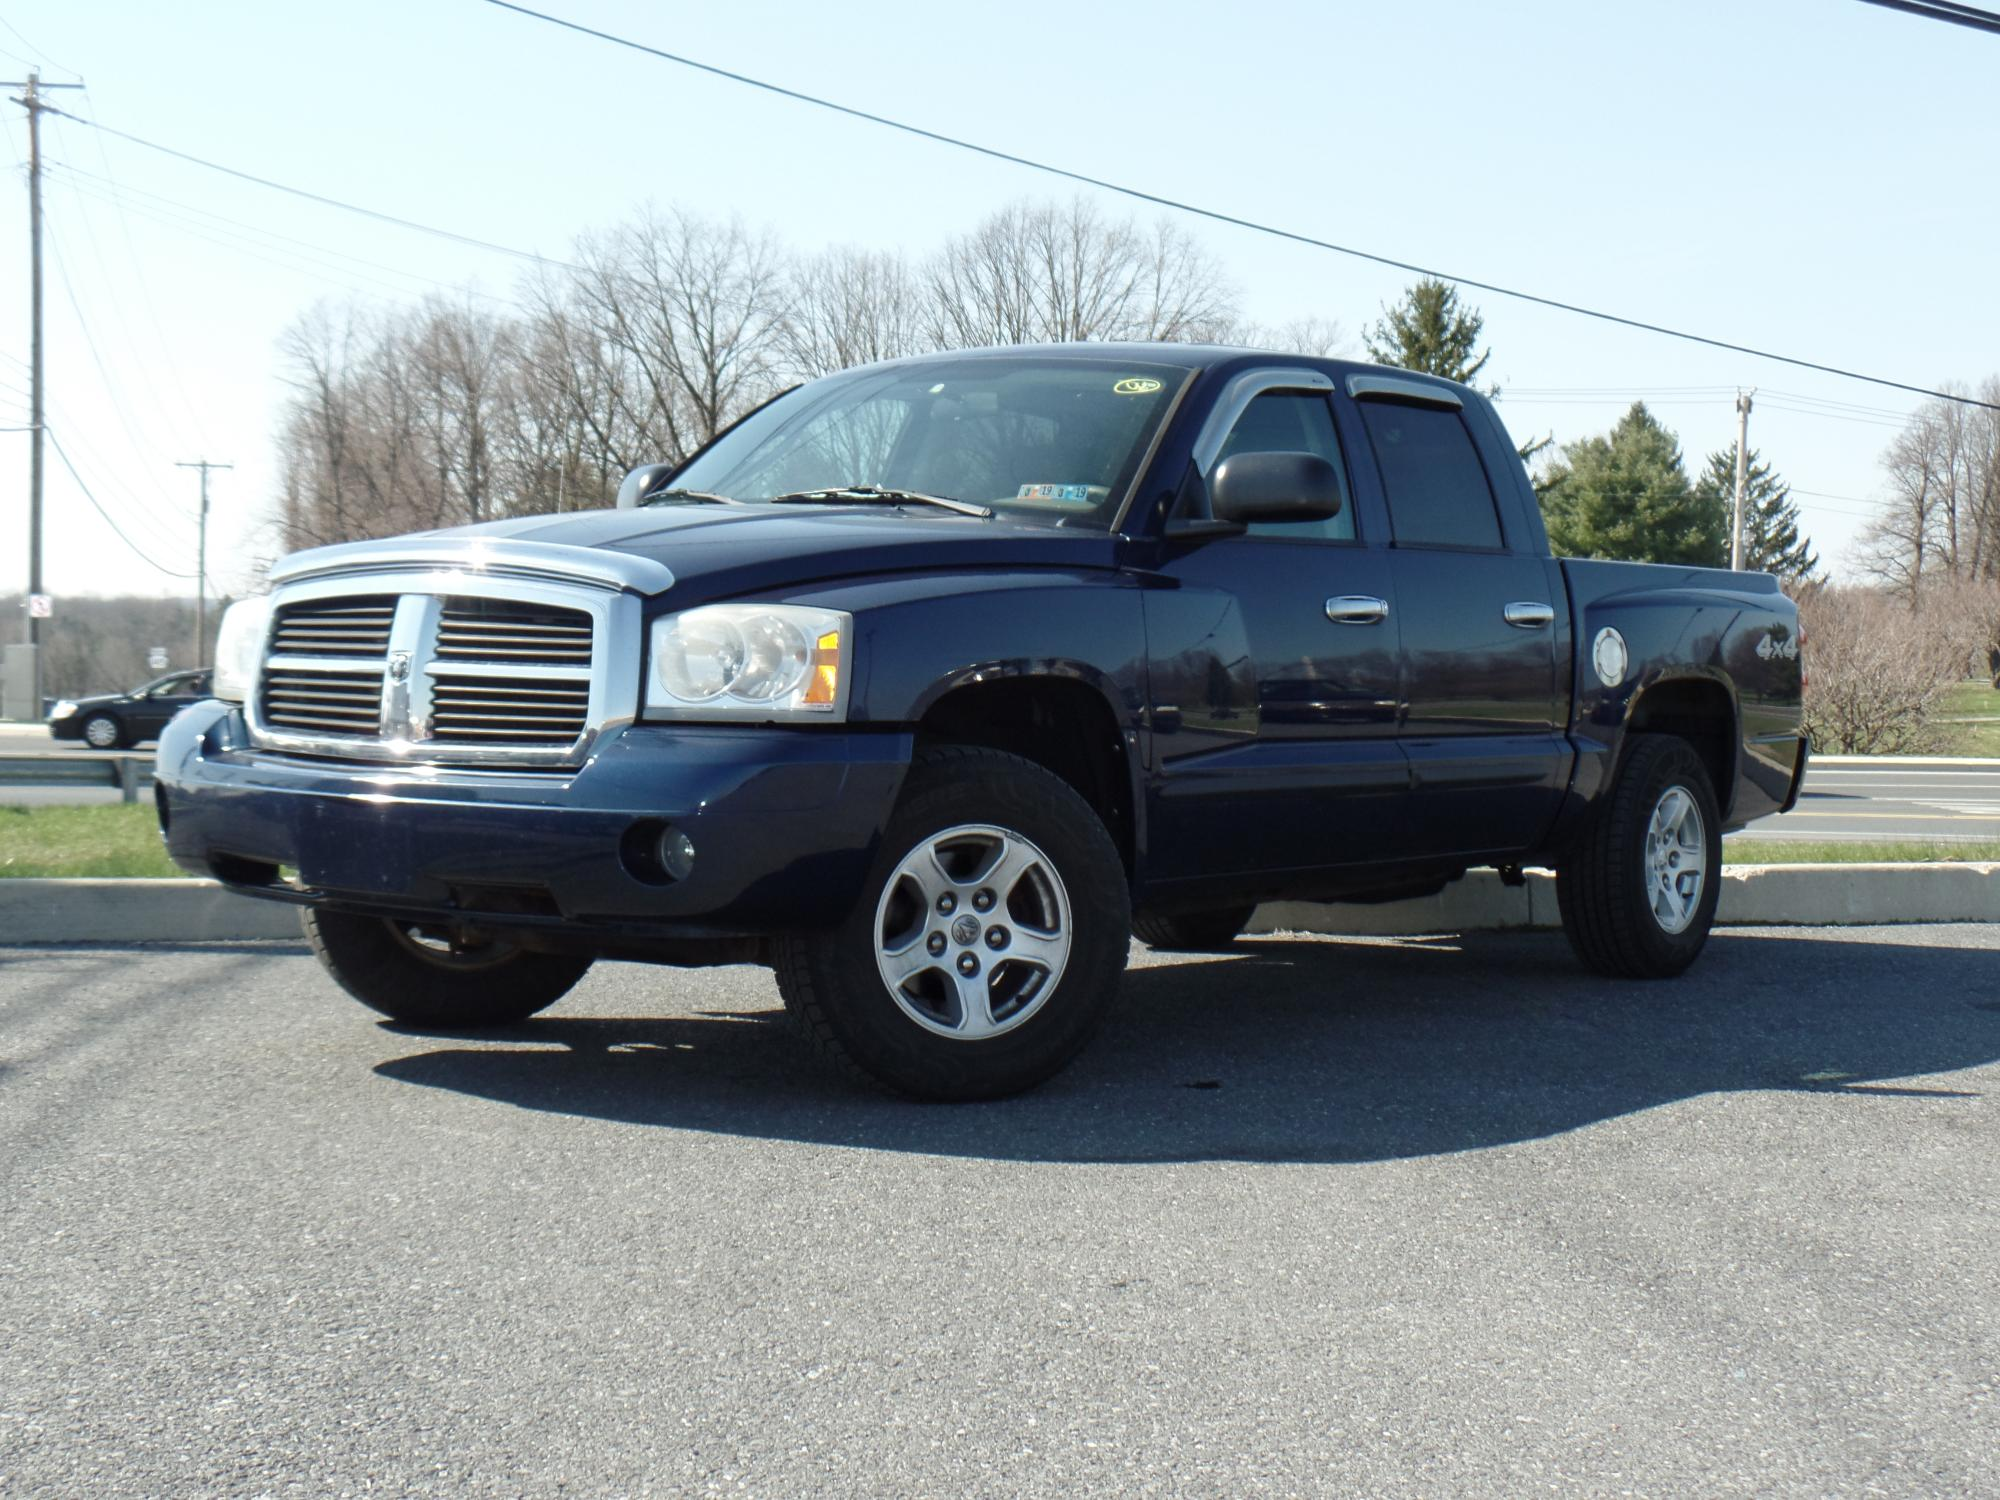 4-23-2018_2007_Dodge_Dakota_138461__1_.JPG